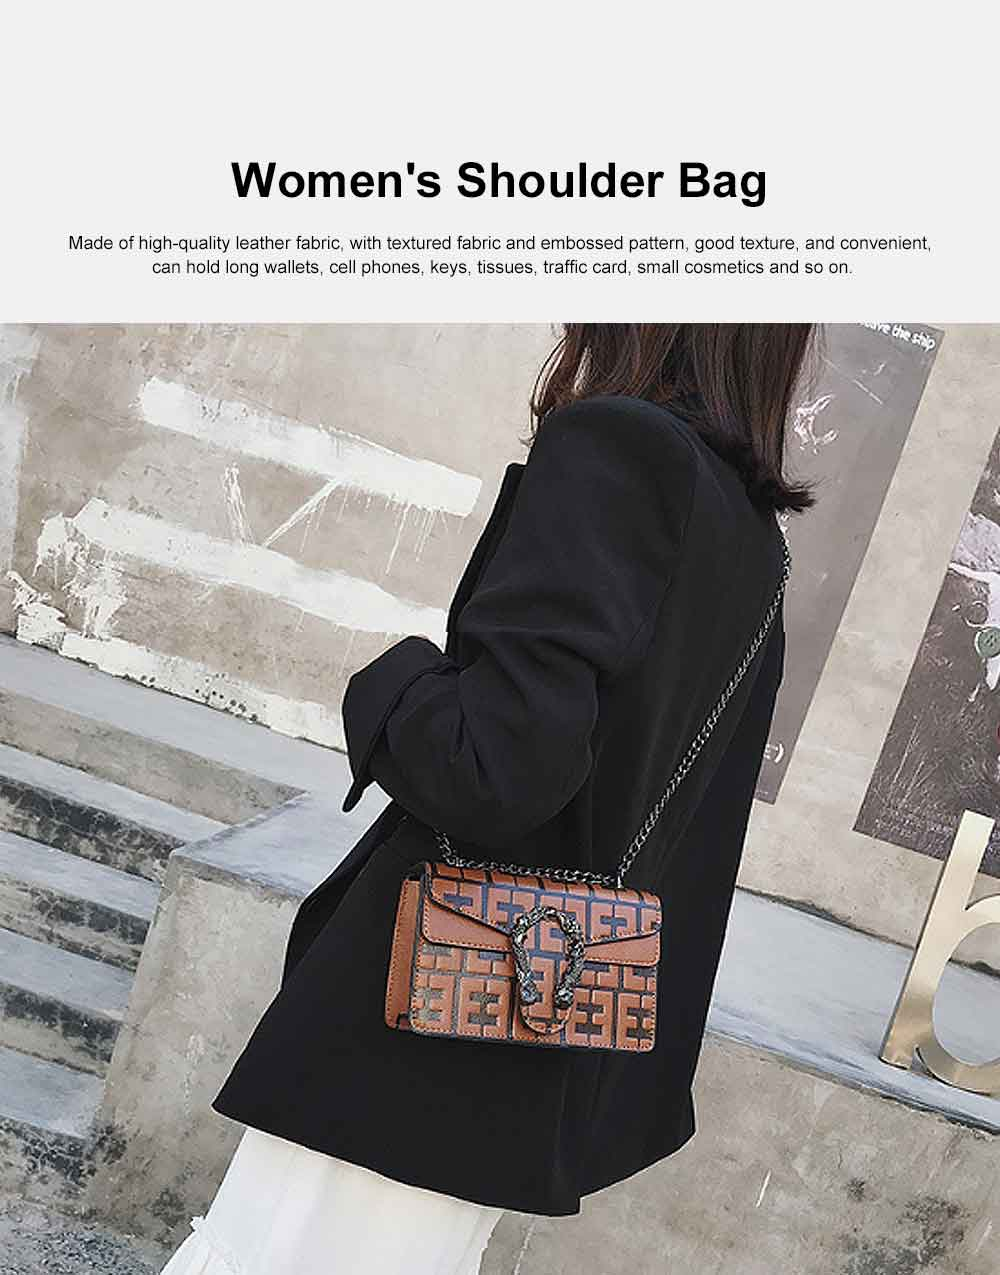 Embossed Pattern Shoulder Bag, Diagonal Bag for Female, with Textured Fabric and Embossed Pattern 2019 0